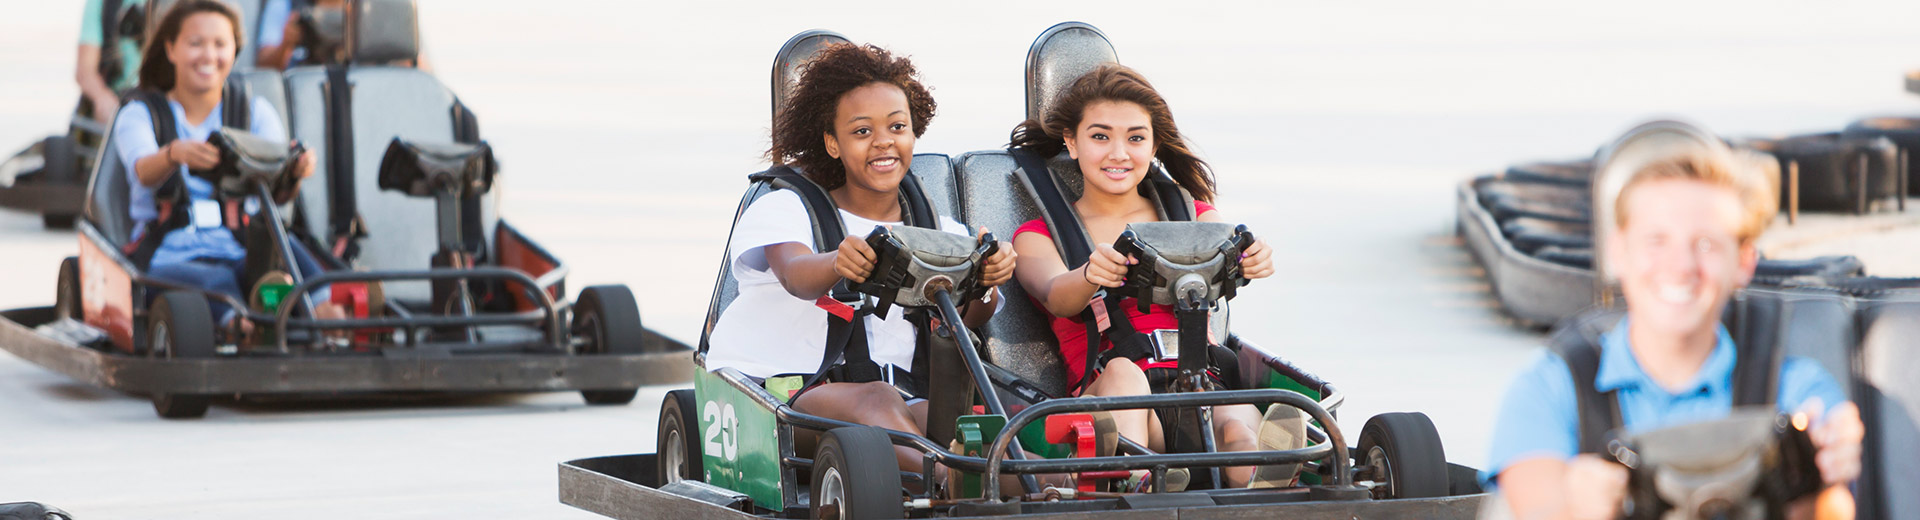 Go Karts | Adventure Landing Family Entertainment Center - Raleigh, NC